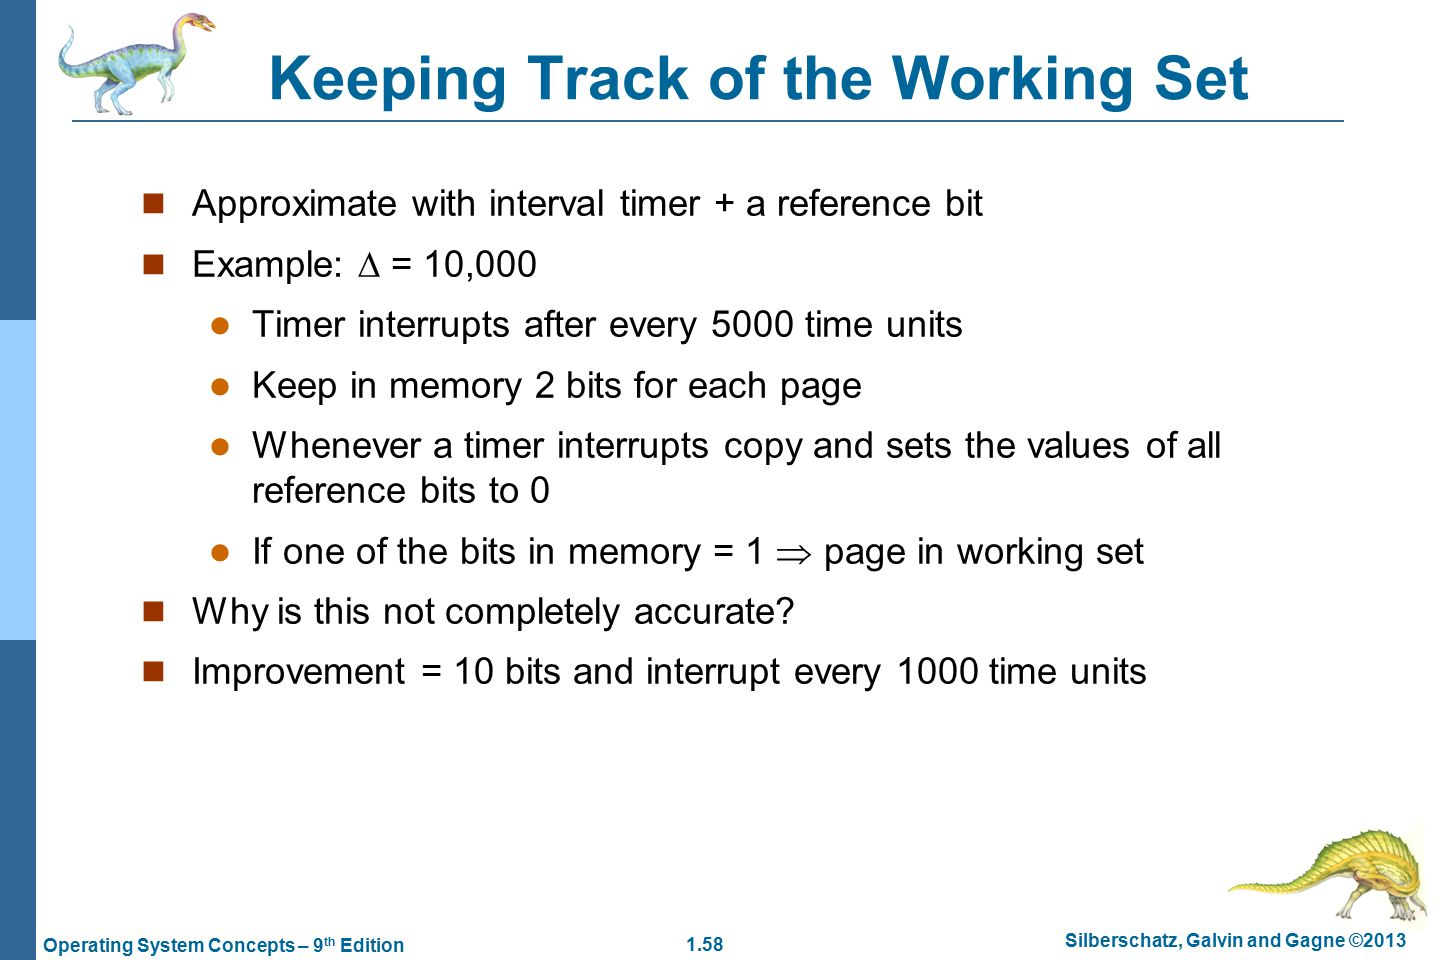 1.58 Silberschatz, Galvin and Gagne ©2013 Operating System Concepts – 9 th Edition Keeping Track of the Working Set Approximate with interval timer + a reference bit Example:  = 10,000 Timer interrupts after every 5000 time units Keep in memory 2 bits for each page Whenever a timer interrupts copy and sets the values of all reference bits to 0 If one of the bits in memory = 1  page in working set Why is this not completely accurate.